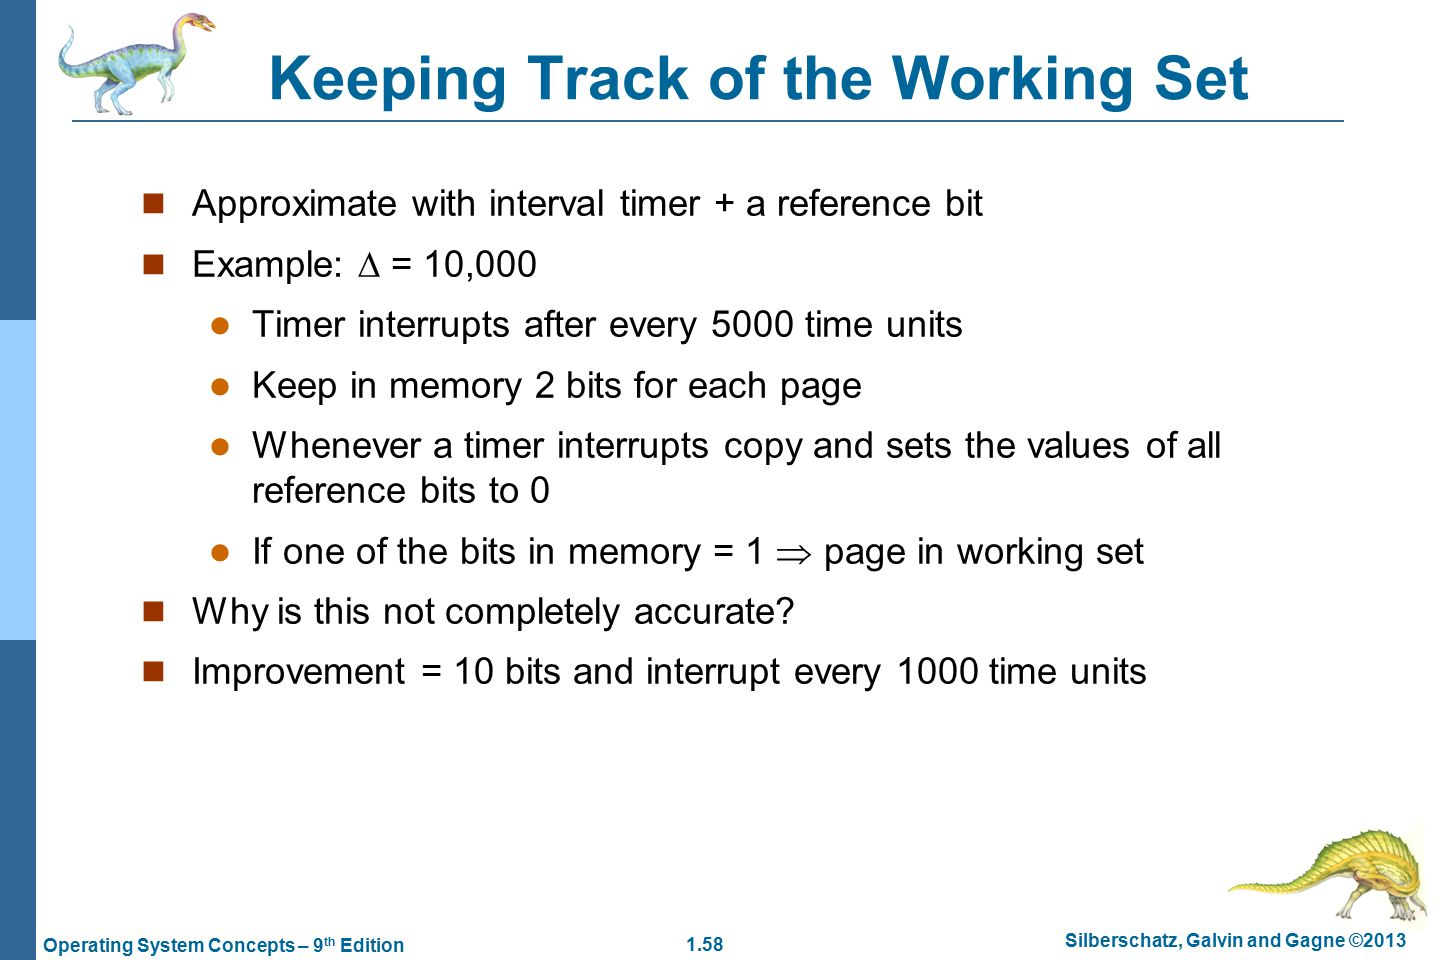 1.58 Silberschatz, Galvin and Gagne ©2013 Operating System Concepts – 9 th Edition Keeping Track of the Working Set Approximate with interval timer + a reference bit Example:  = 10,000 Timer interrupts after every 5000 time units Keep in memory 2 bits for each page Whenever a timer interrupts copy and sets the values of all reference bits to 0 If one of the bits in memory = 1  page in working set Why is this not completely accurate.